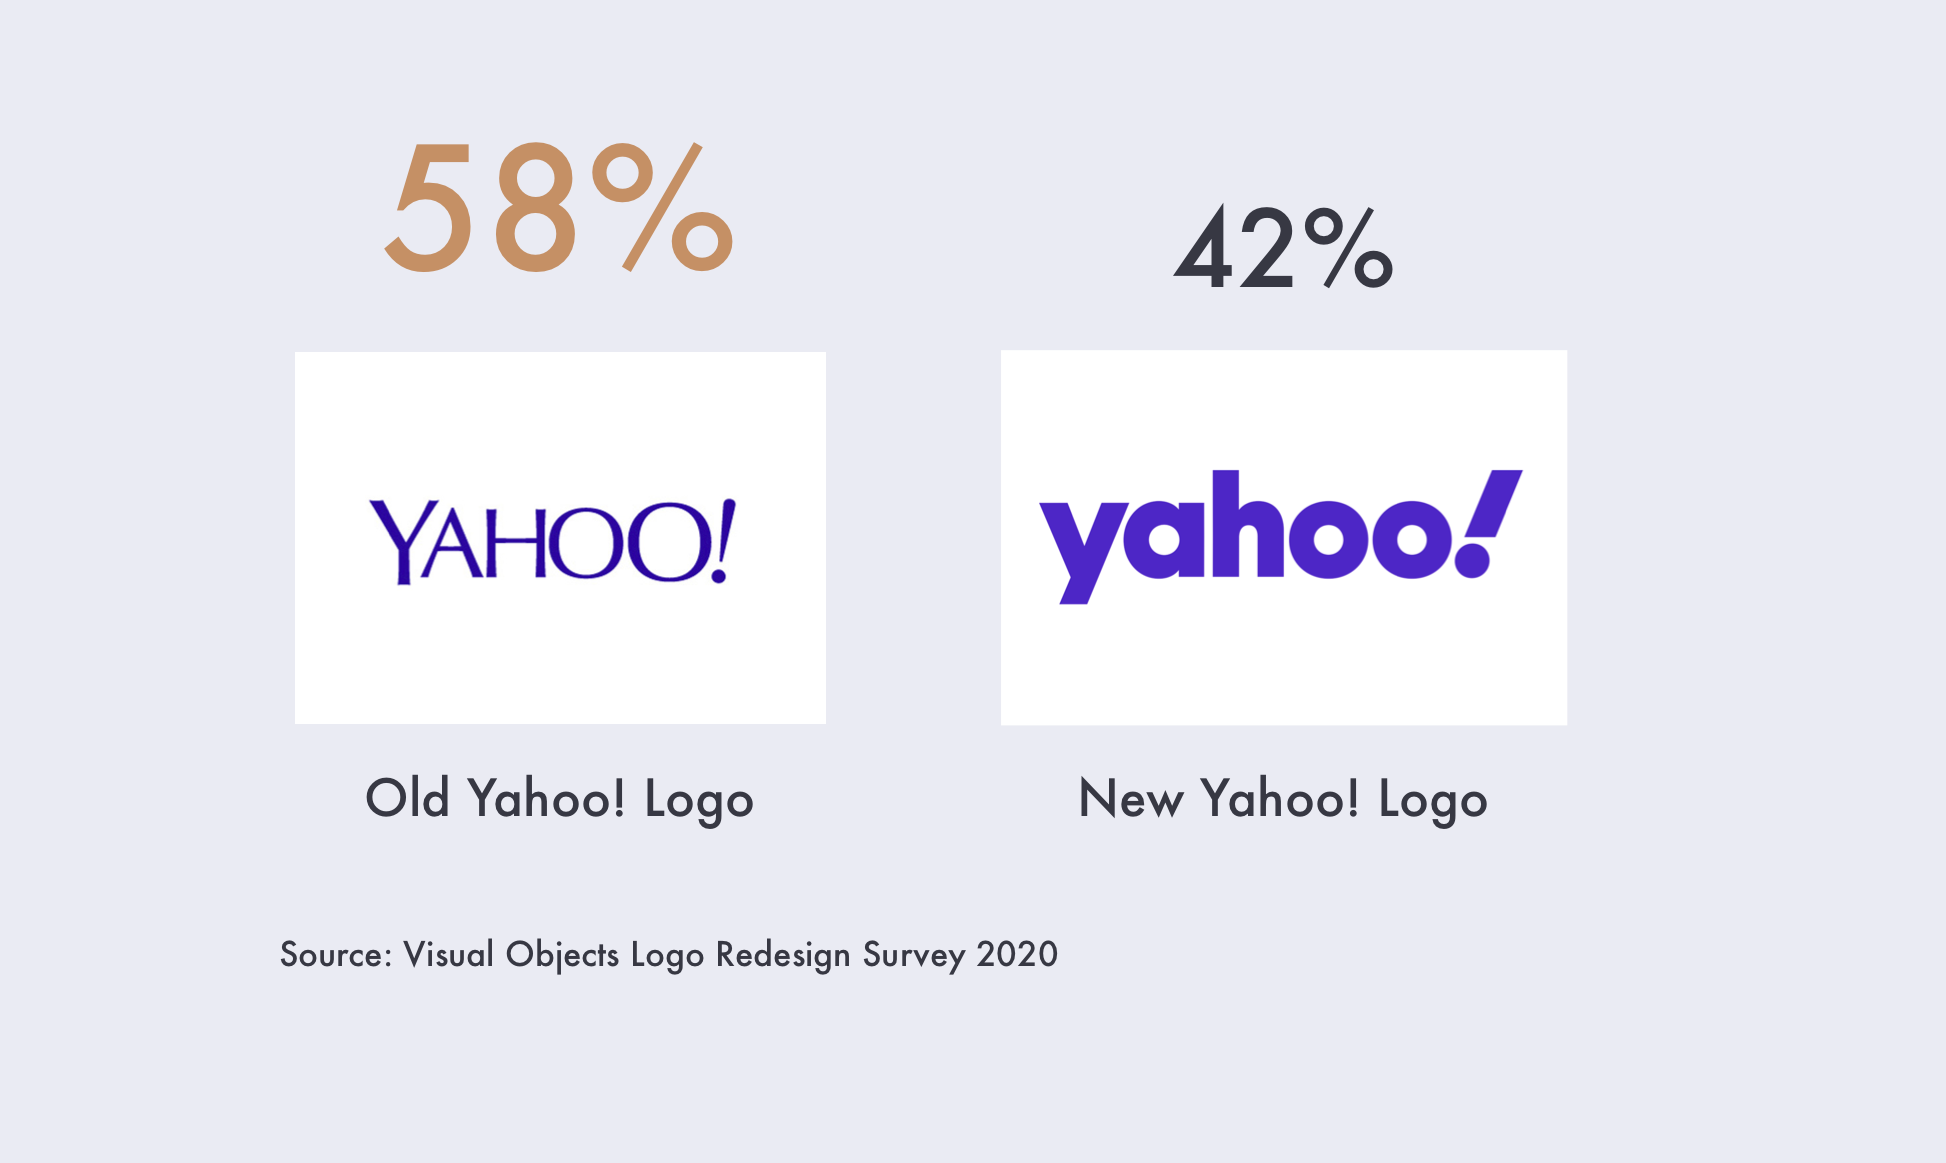 68% of people prefer the old yahoo logo